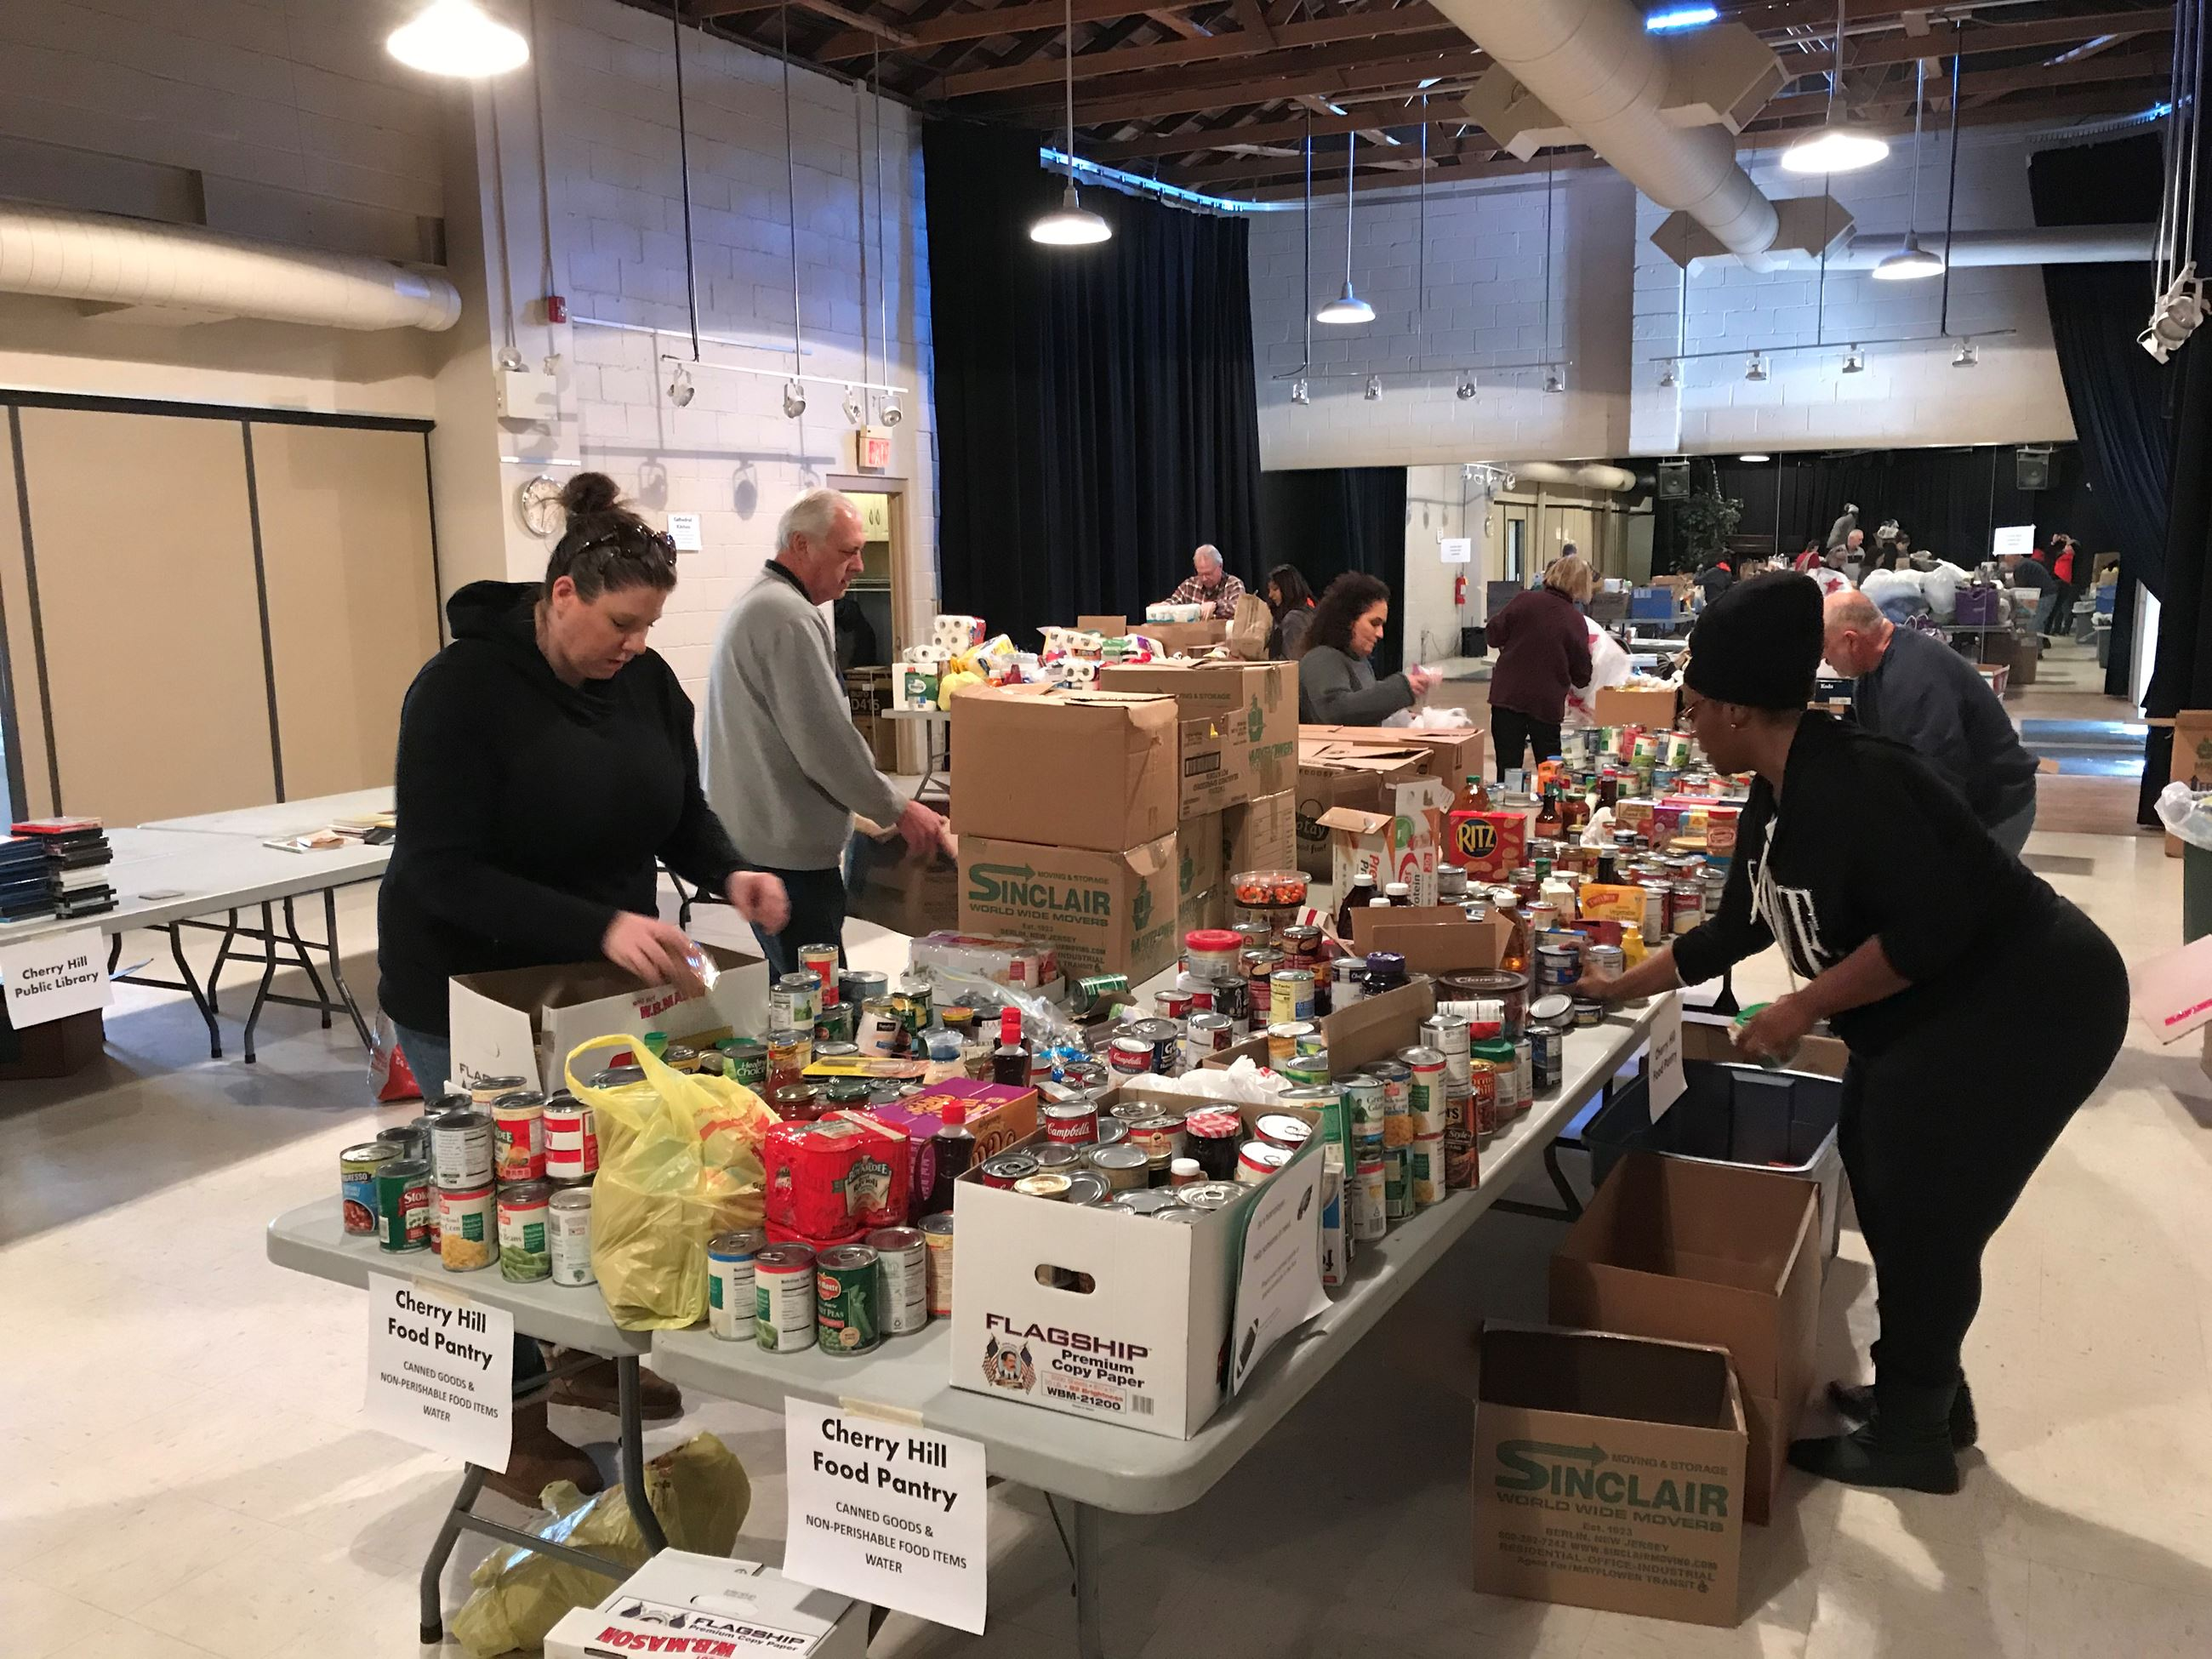 Volunteers at table laden with donations for food pantry